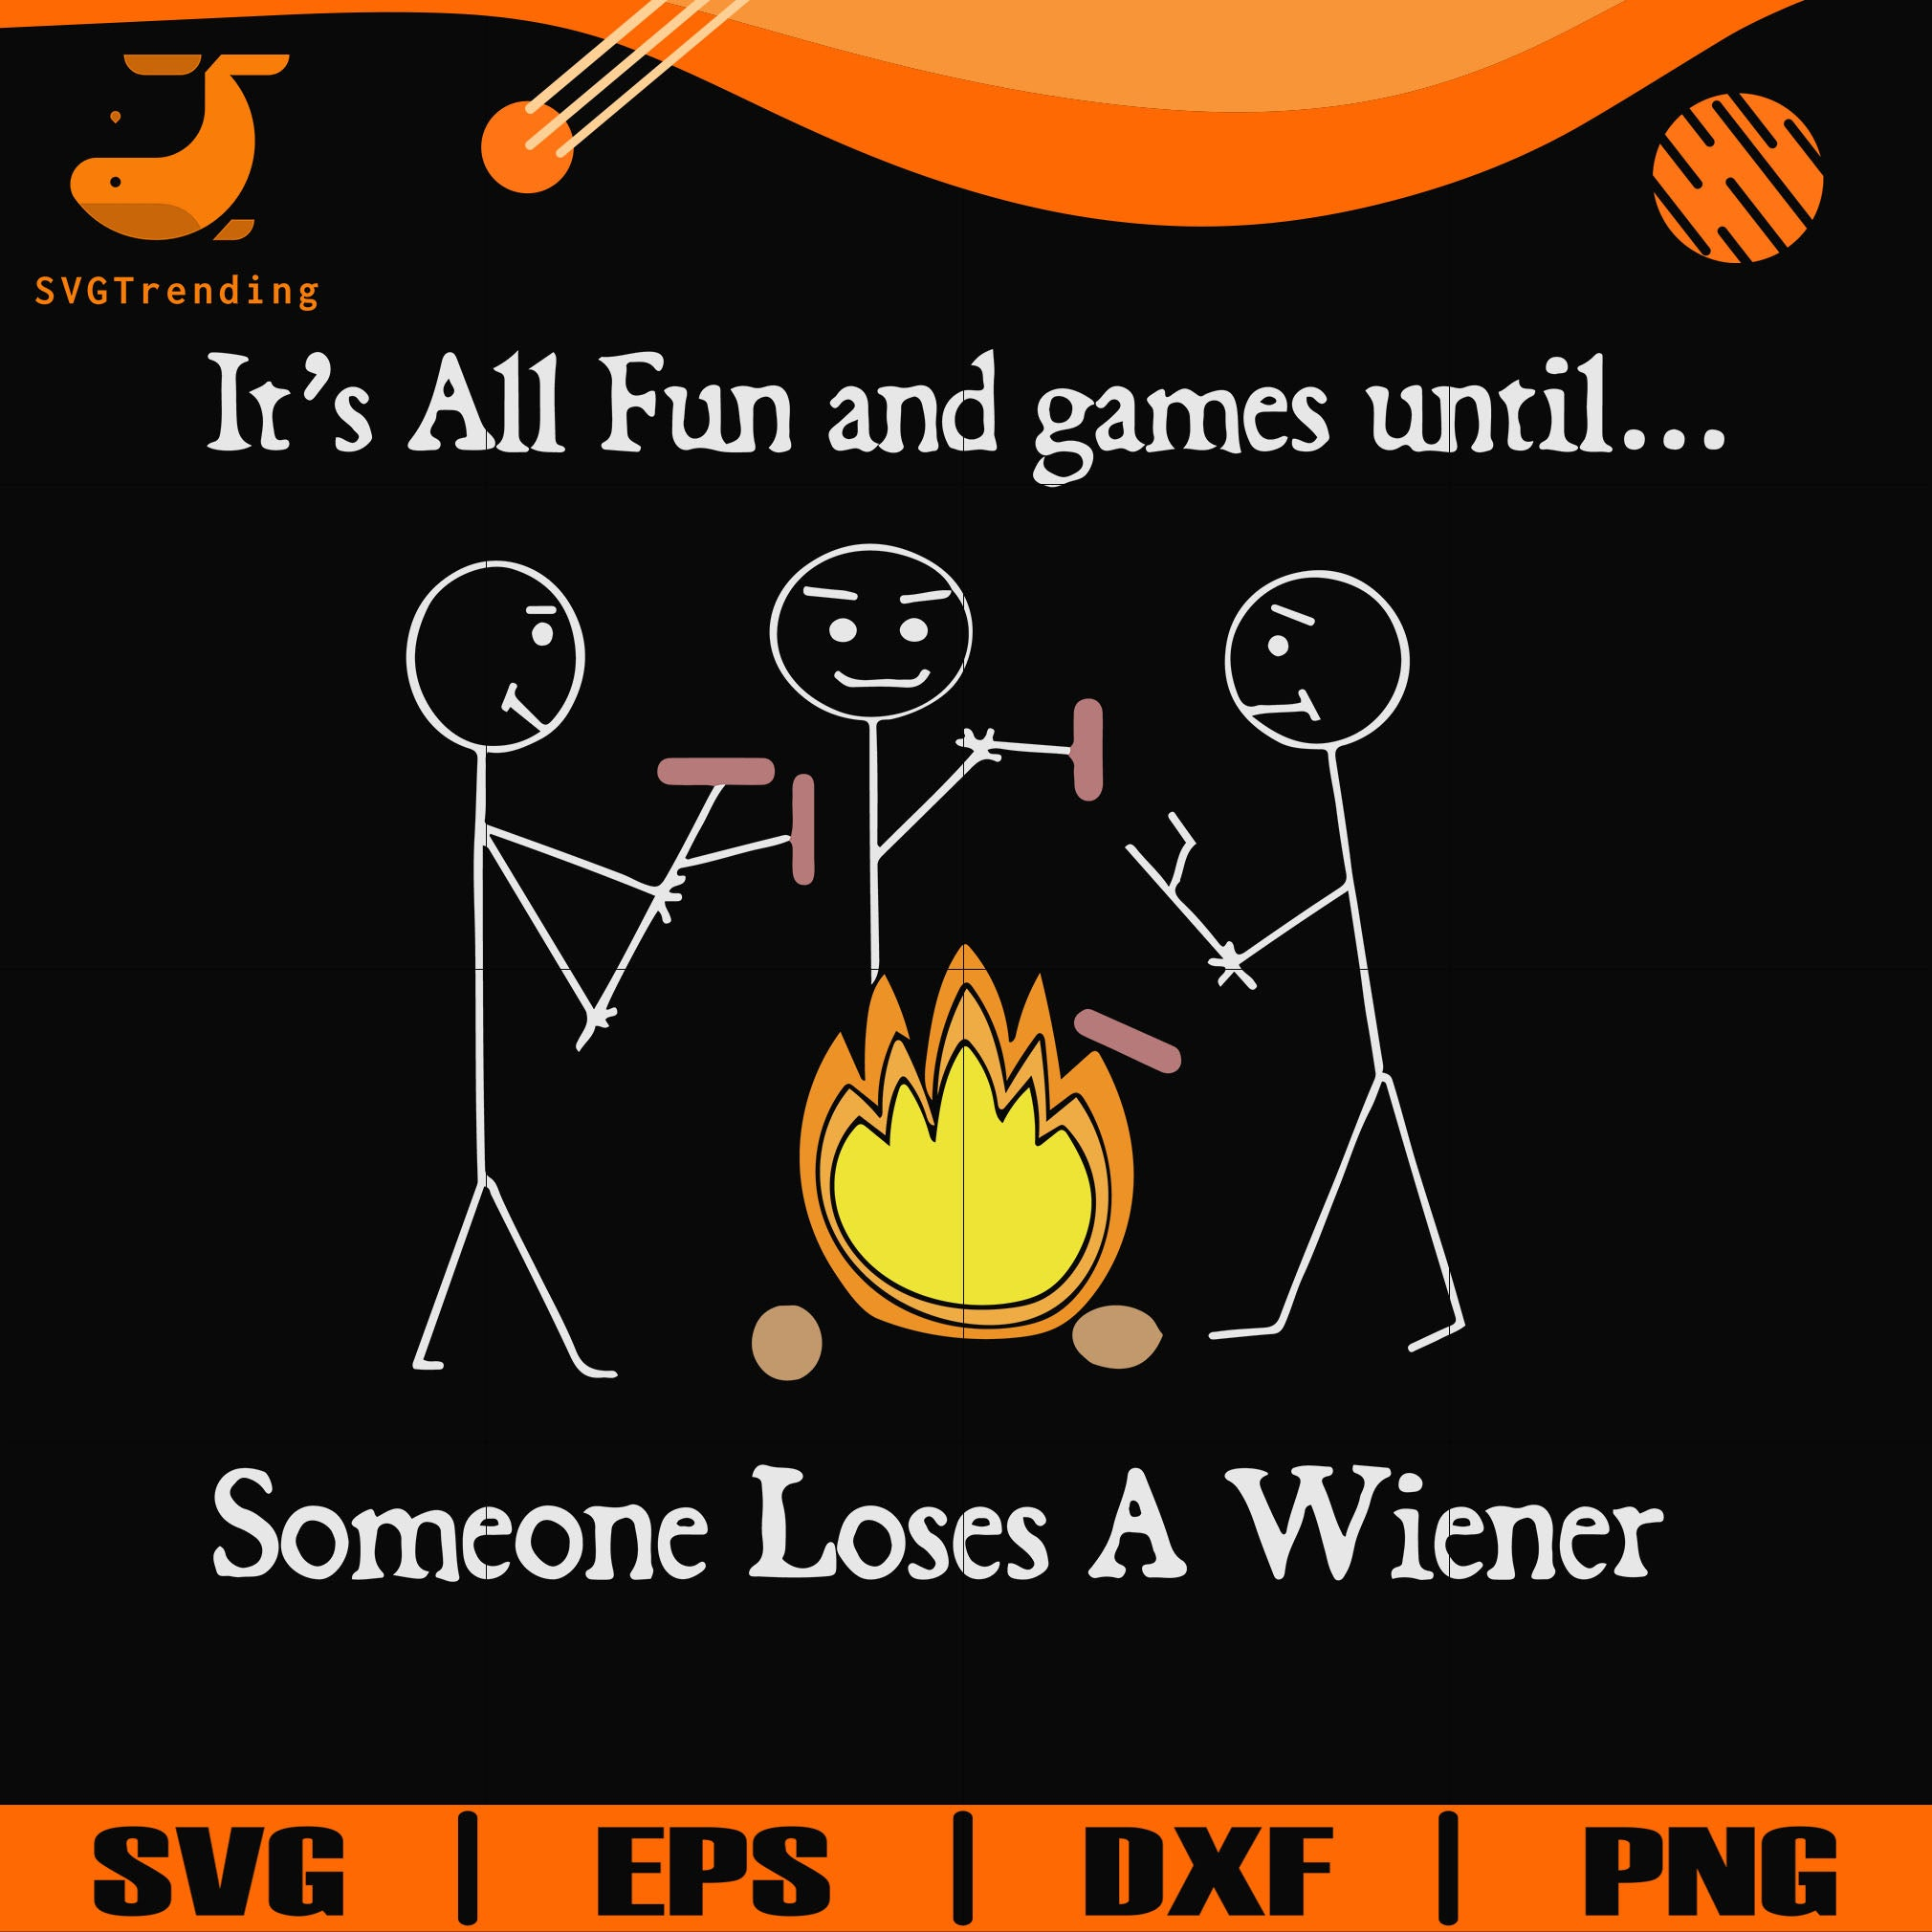 Funny Camping SVG Wiener SVG Cutting Files for Cricut It/'s All Fun and Games Until Sublimation for Vinyl Cutting Silhouette